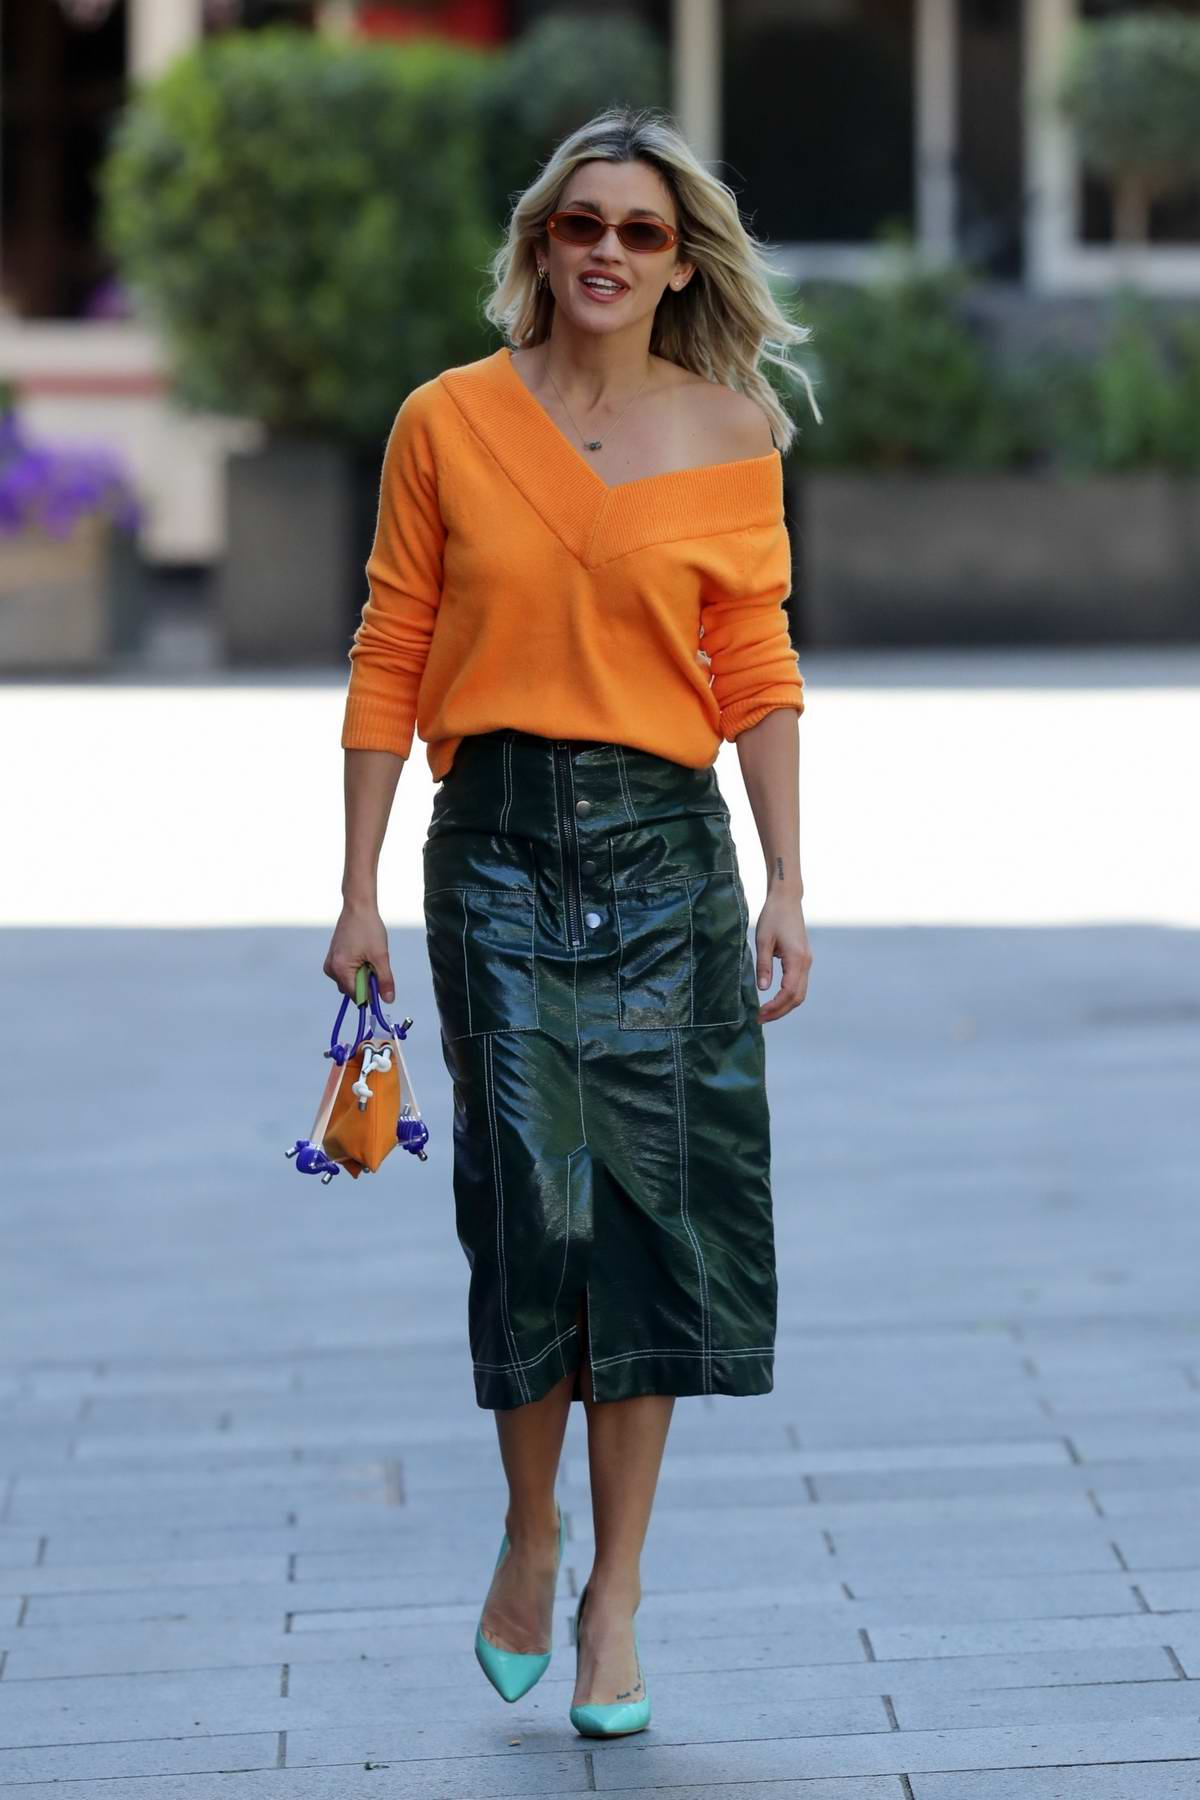 Ashley Roberts looks stylish in an orange jumper and green skirt as she leaves the Global studios in London, UK